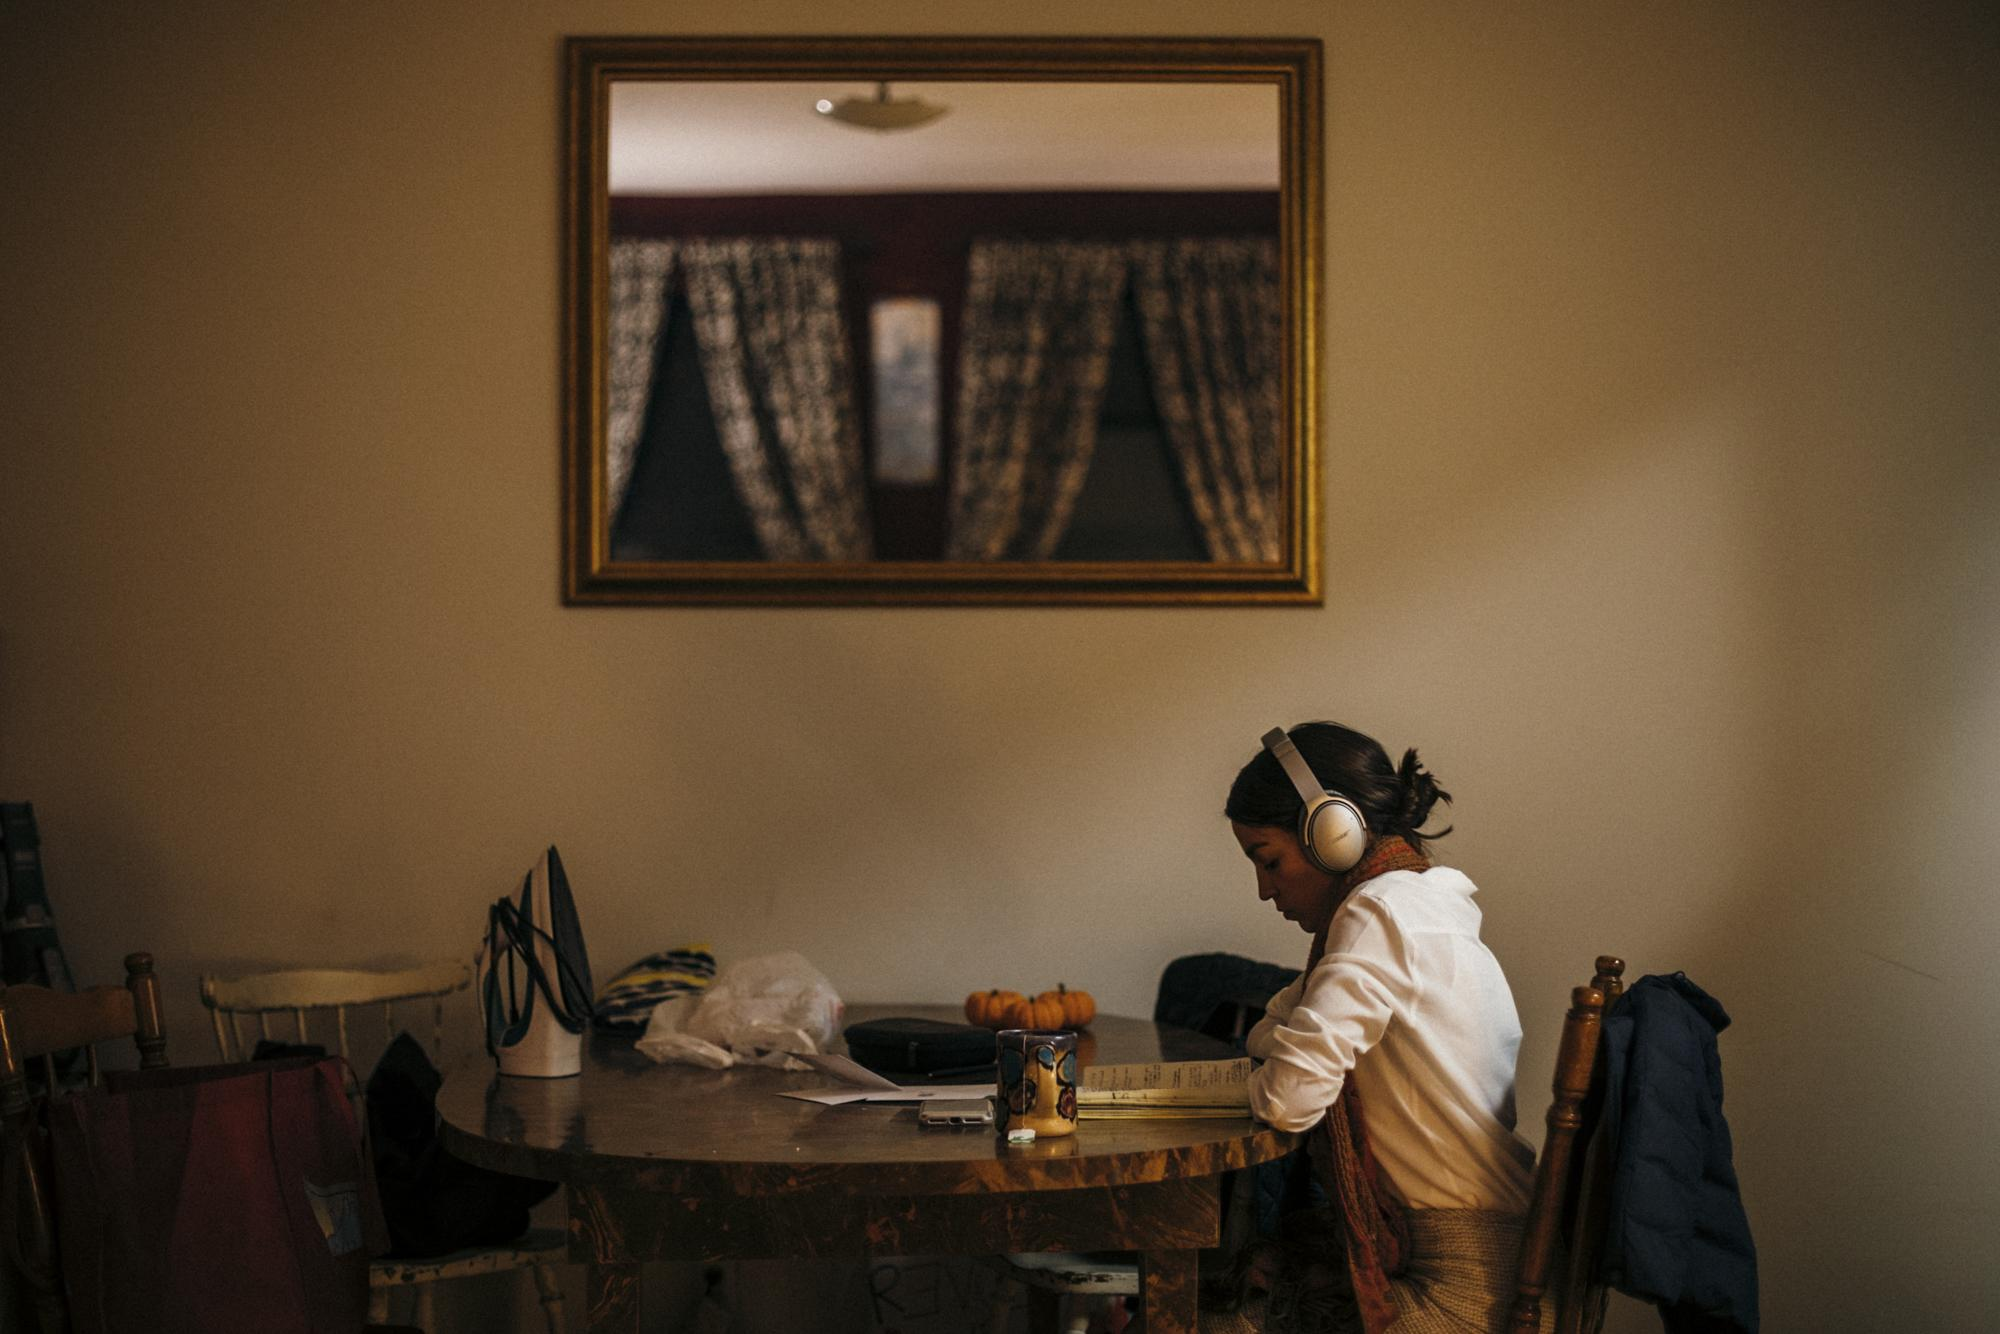 As the polls close and the waning moments NY-14 General Election begin to unfold, hopeful congressional candidate Alexandria Ocasio-Cortez takes a moment to decompress as she writes a concession speech and victory speech as her mother, Blanca, irons her dress beside her, in the Sunnyside neighborhood of Queens, New York, November 6, 2018.